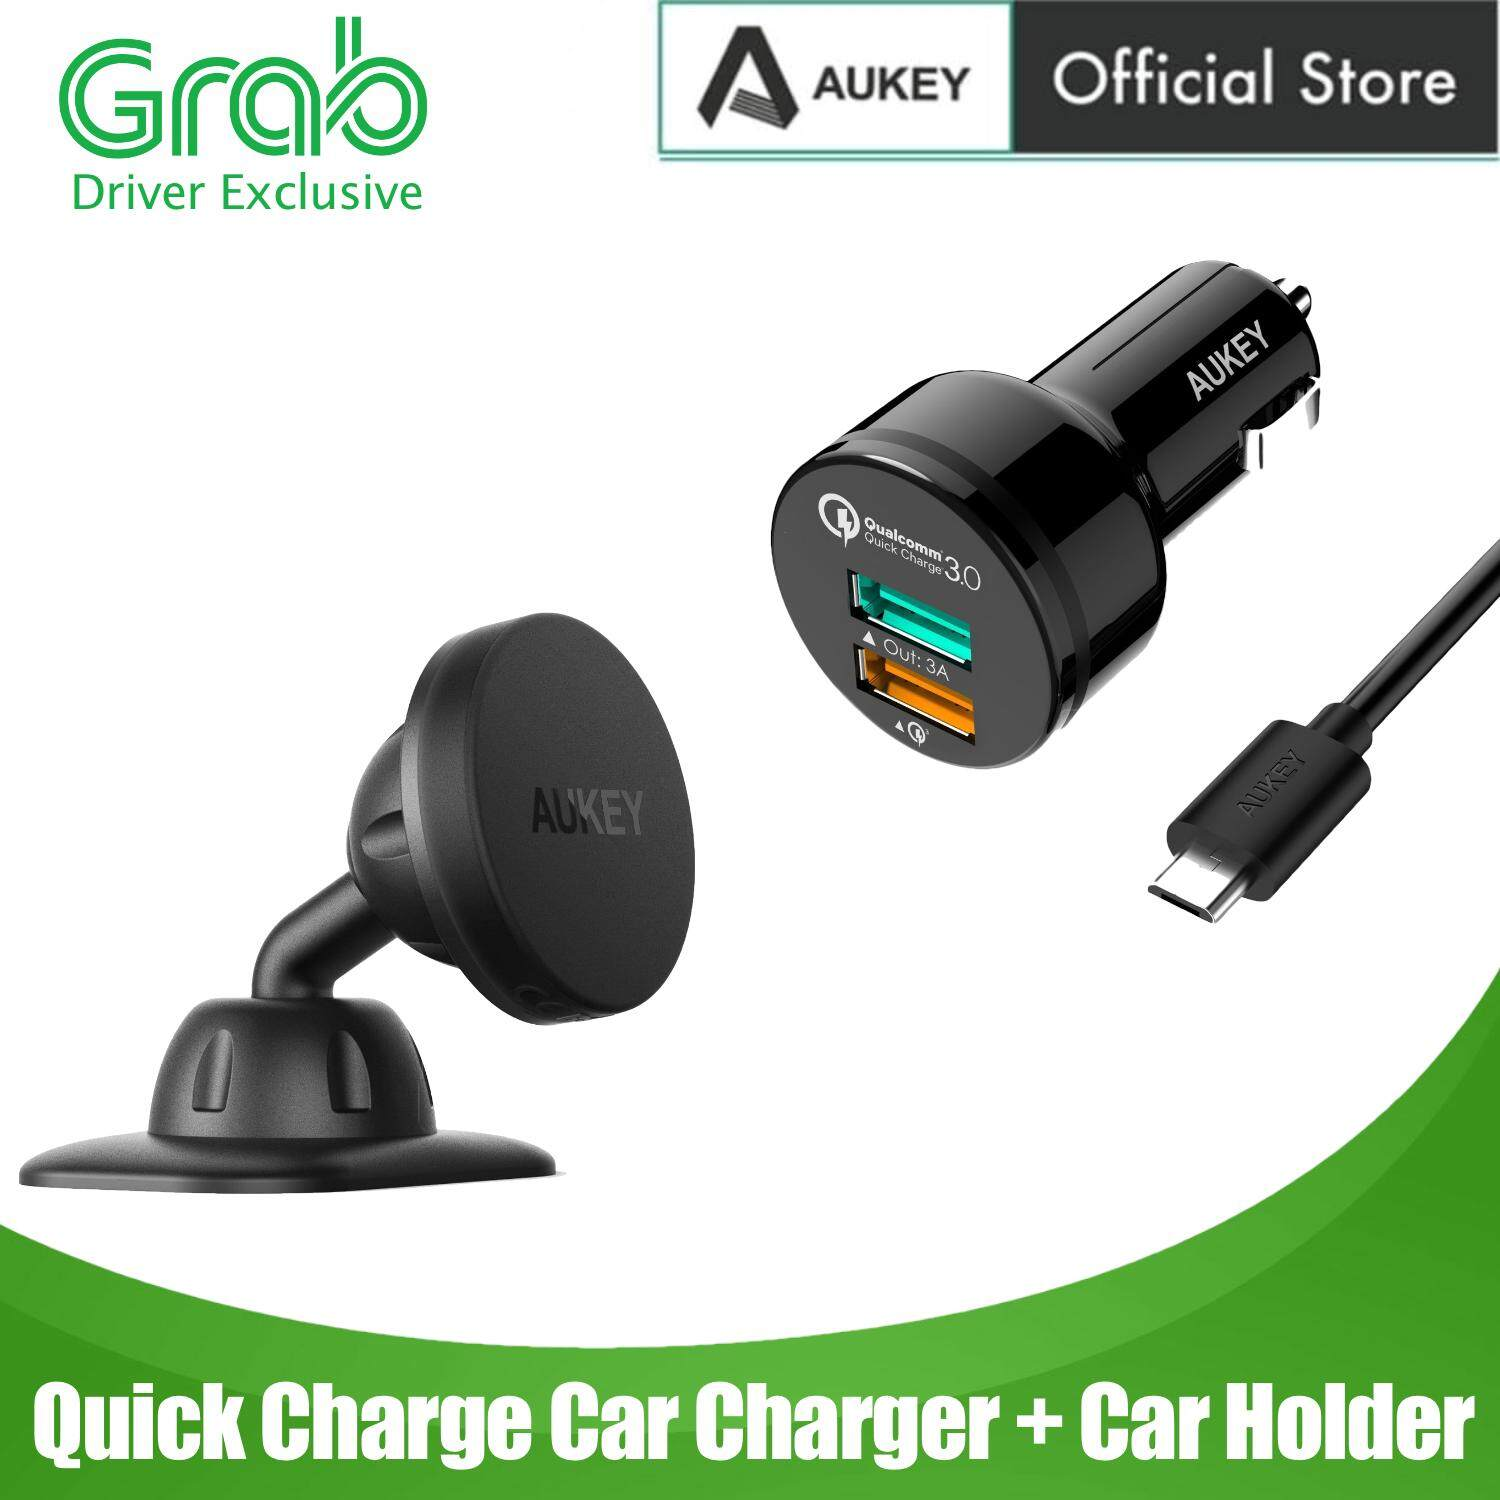 [12.12 Crazy Brand Mega Offers][GRAB DRIVER EXCLUSIVE] [3 IN 1 SET] Aukey CC-T7 Quick Charge 3.0 Car Charger With HD-C13 Magnetic Car Holder